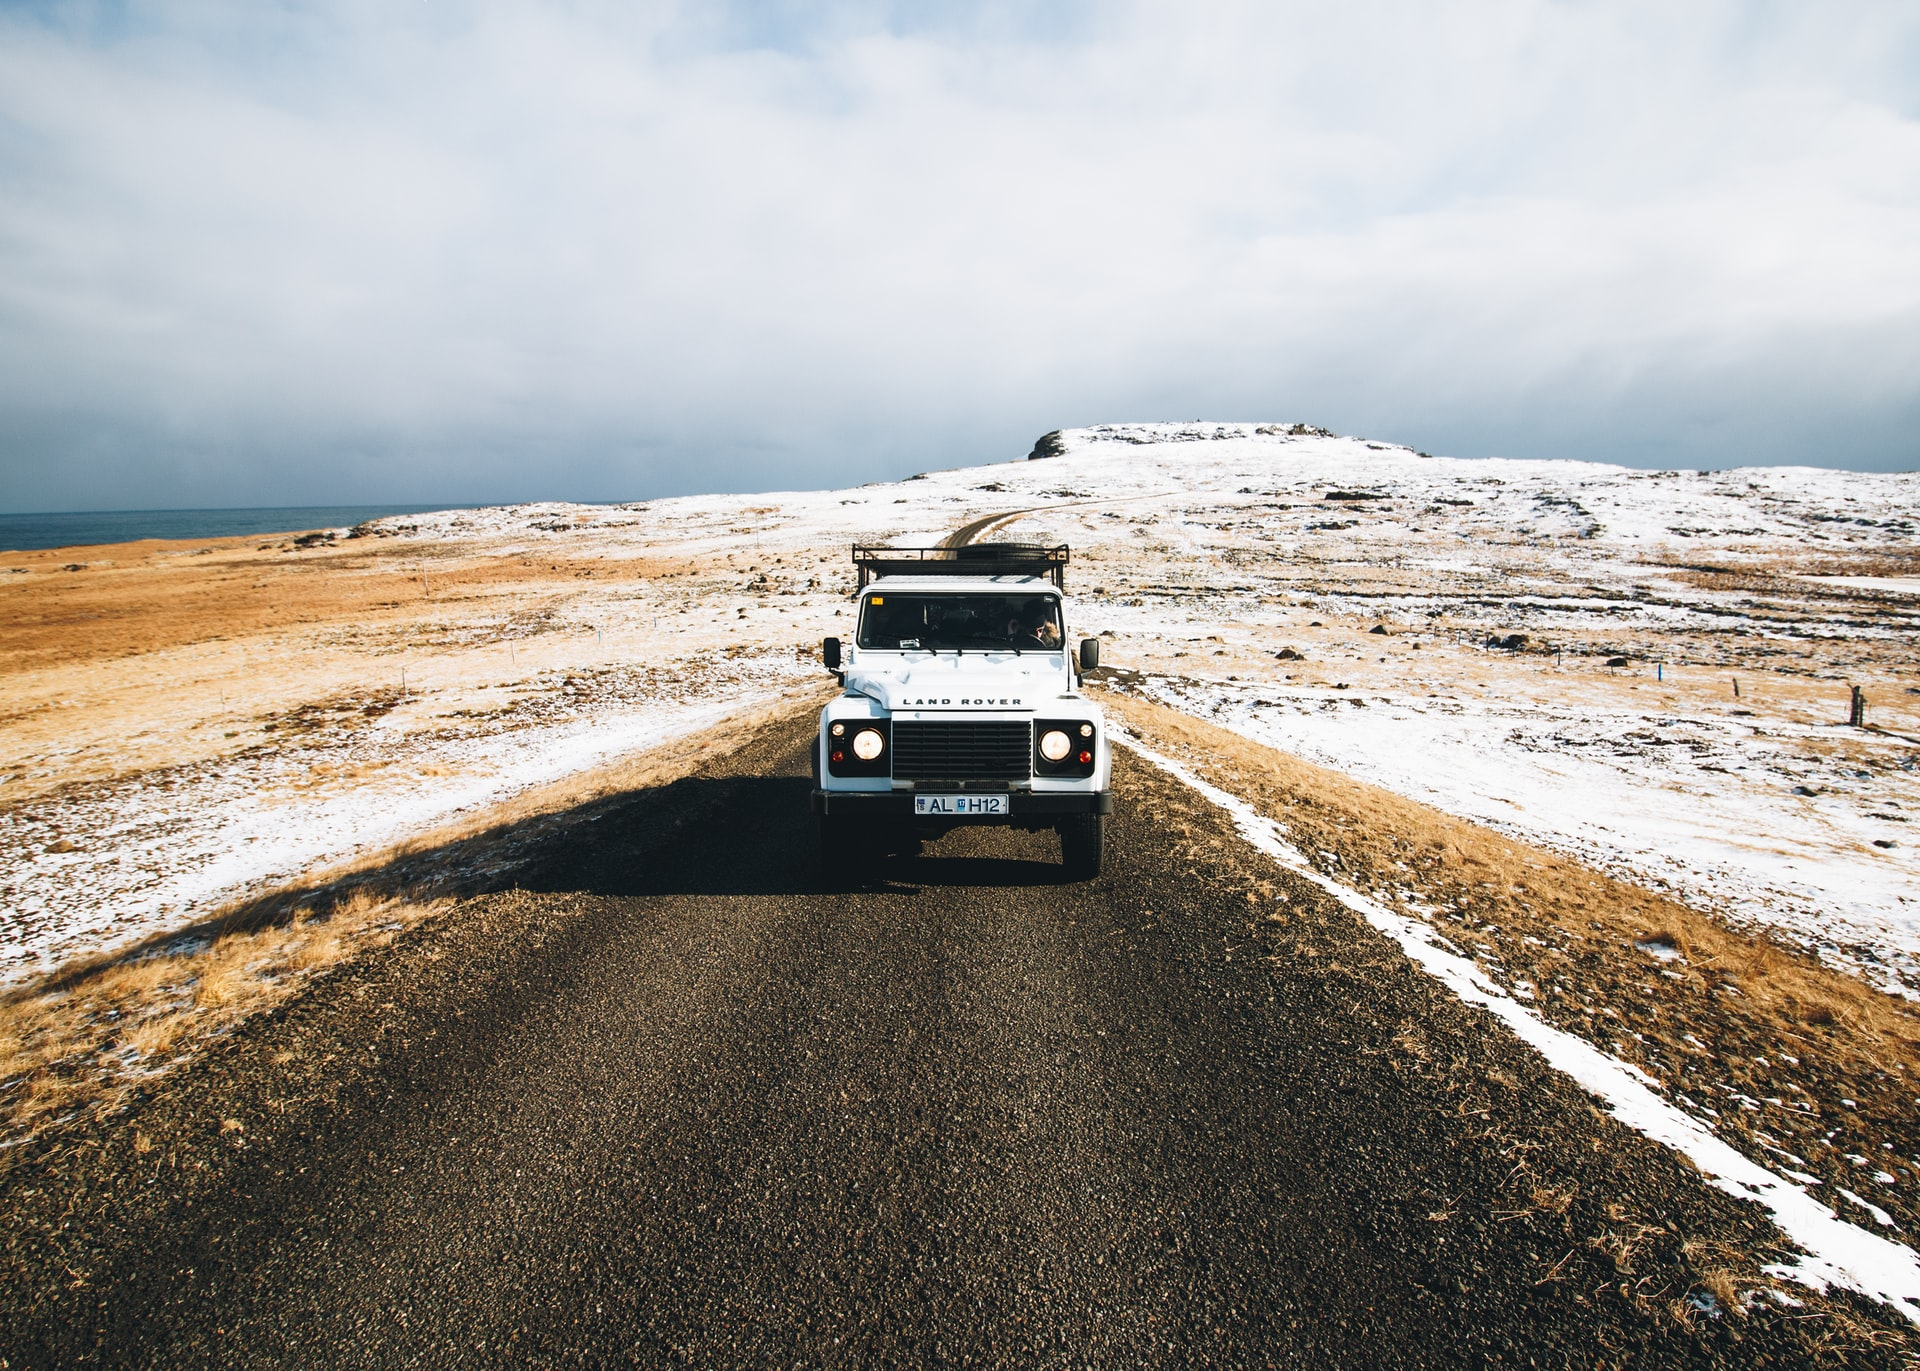 Best Romantic Road Trips Ideas for Couples in 2021